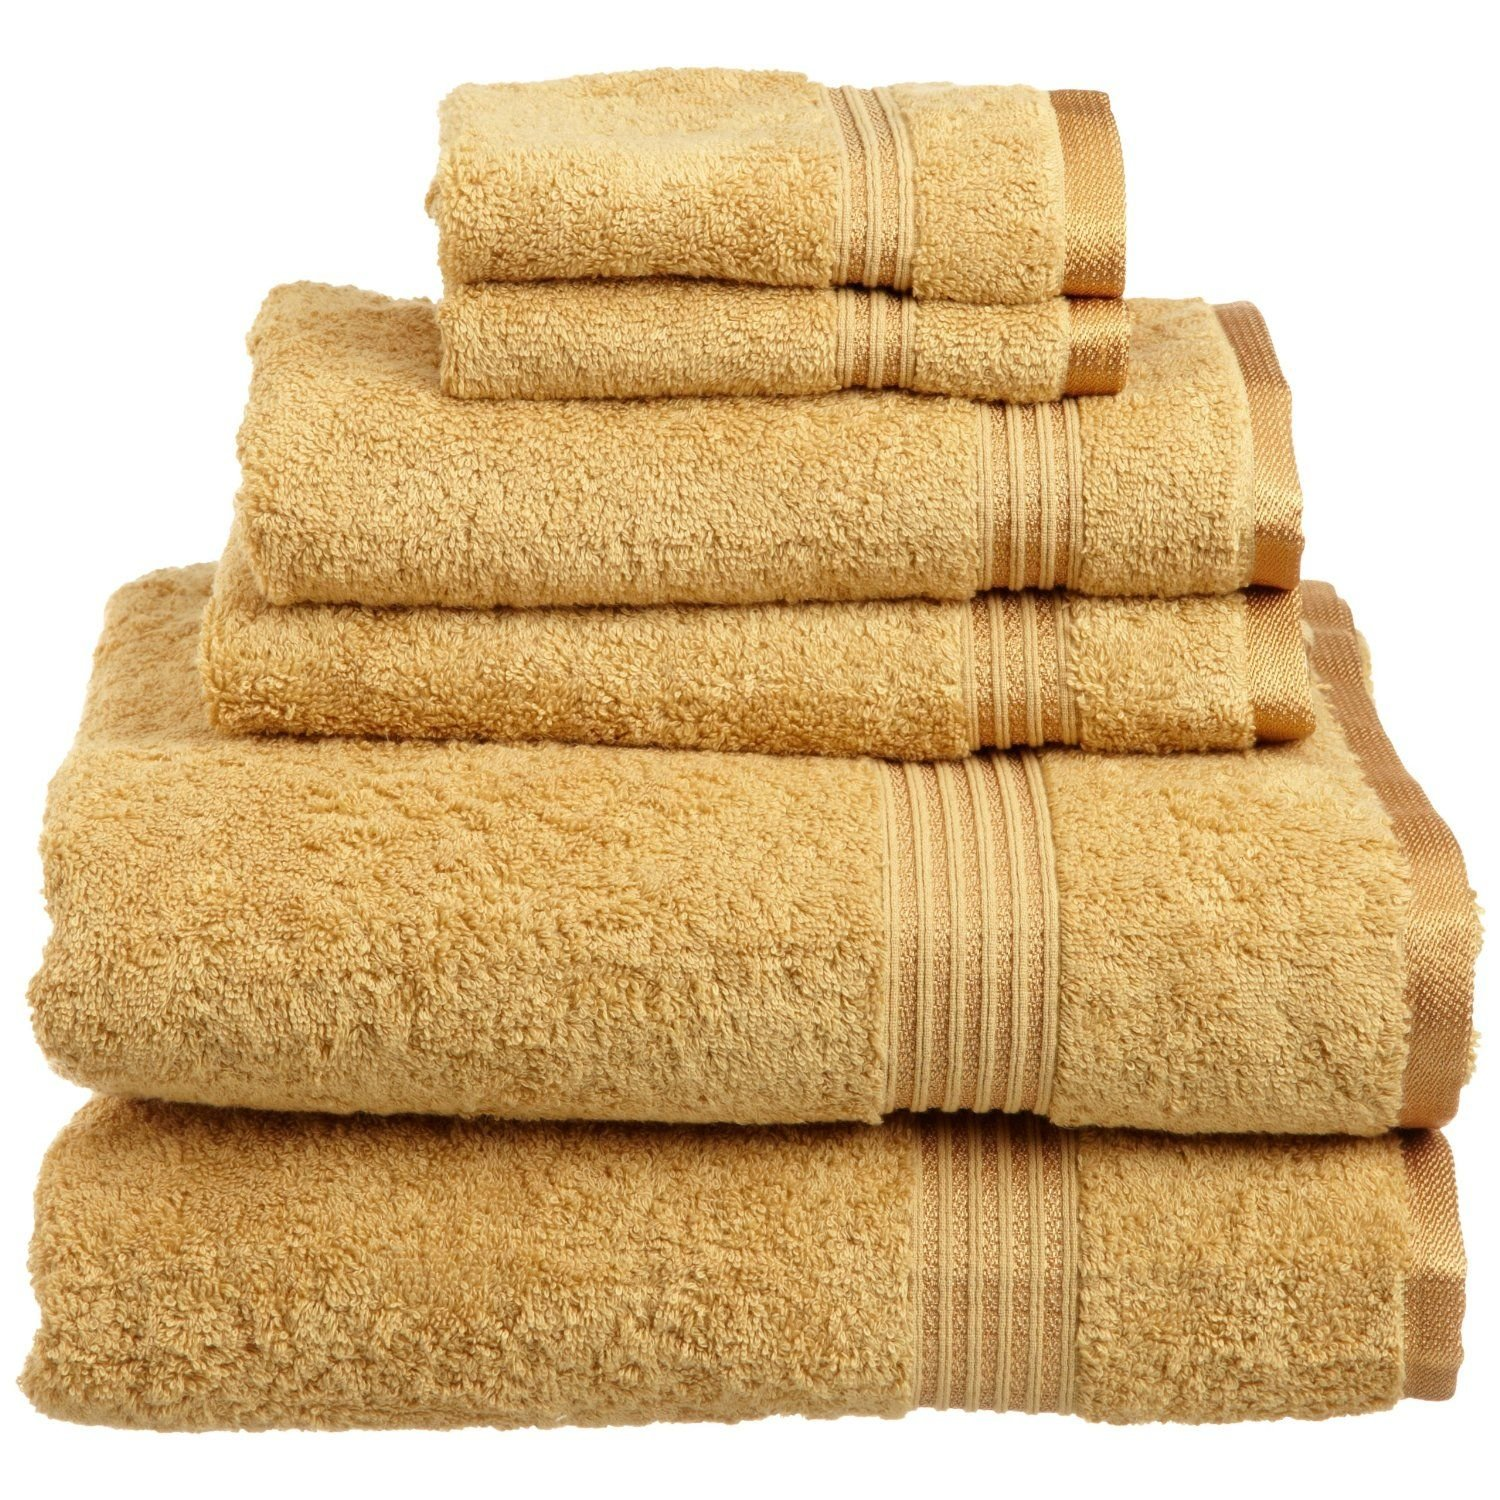 Superior Luxurious Soft Hotel & Spa Quality 6-Piece Towel Set, Made of 100% Premium Long-Staple Combed Cotton - 2 Washcloths, 2 Hand Towels, and 2 Bath Towels, Gold by Superior (Image #1)